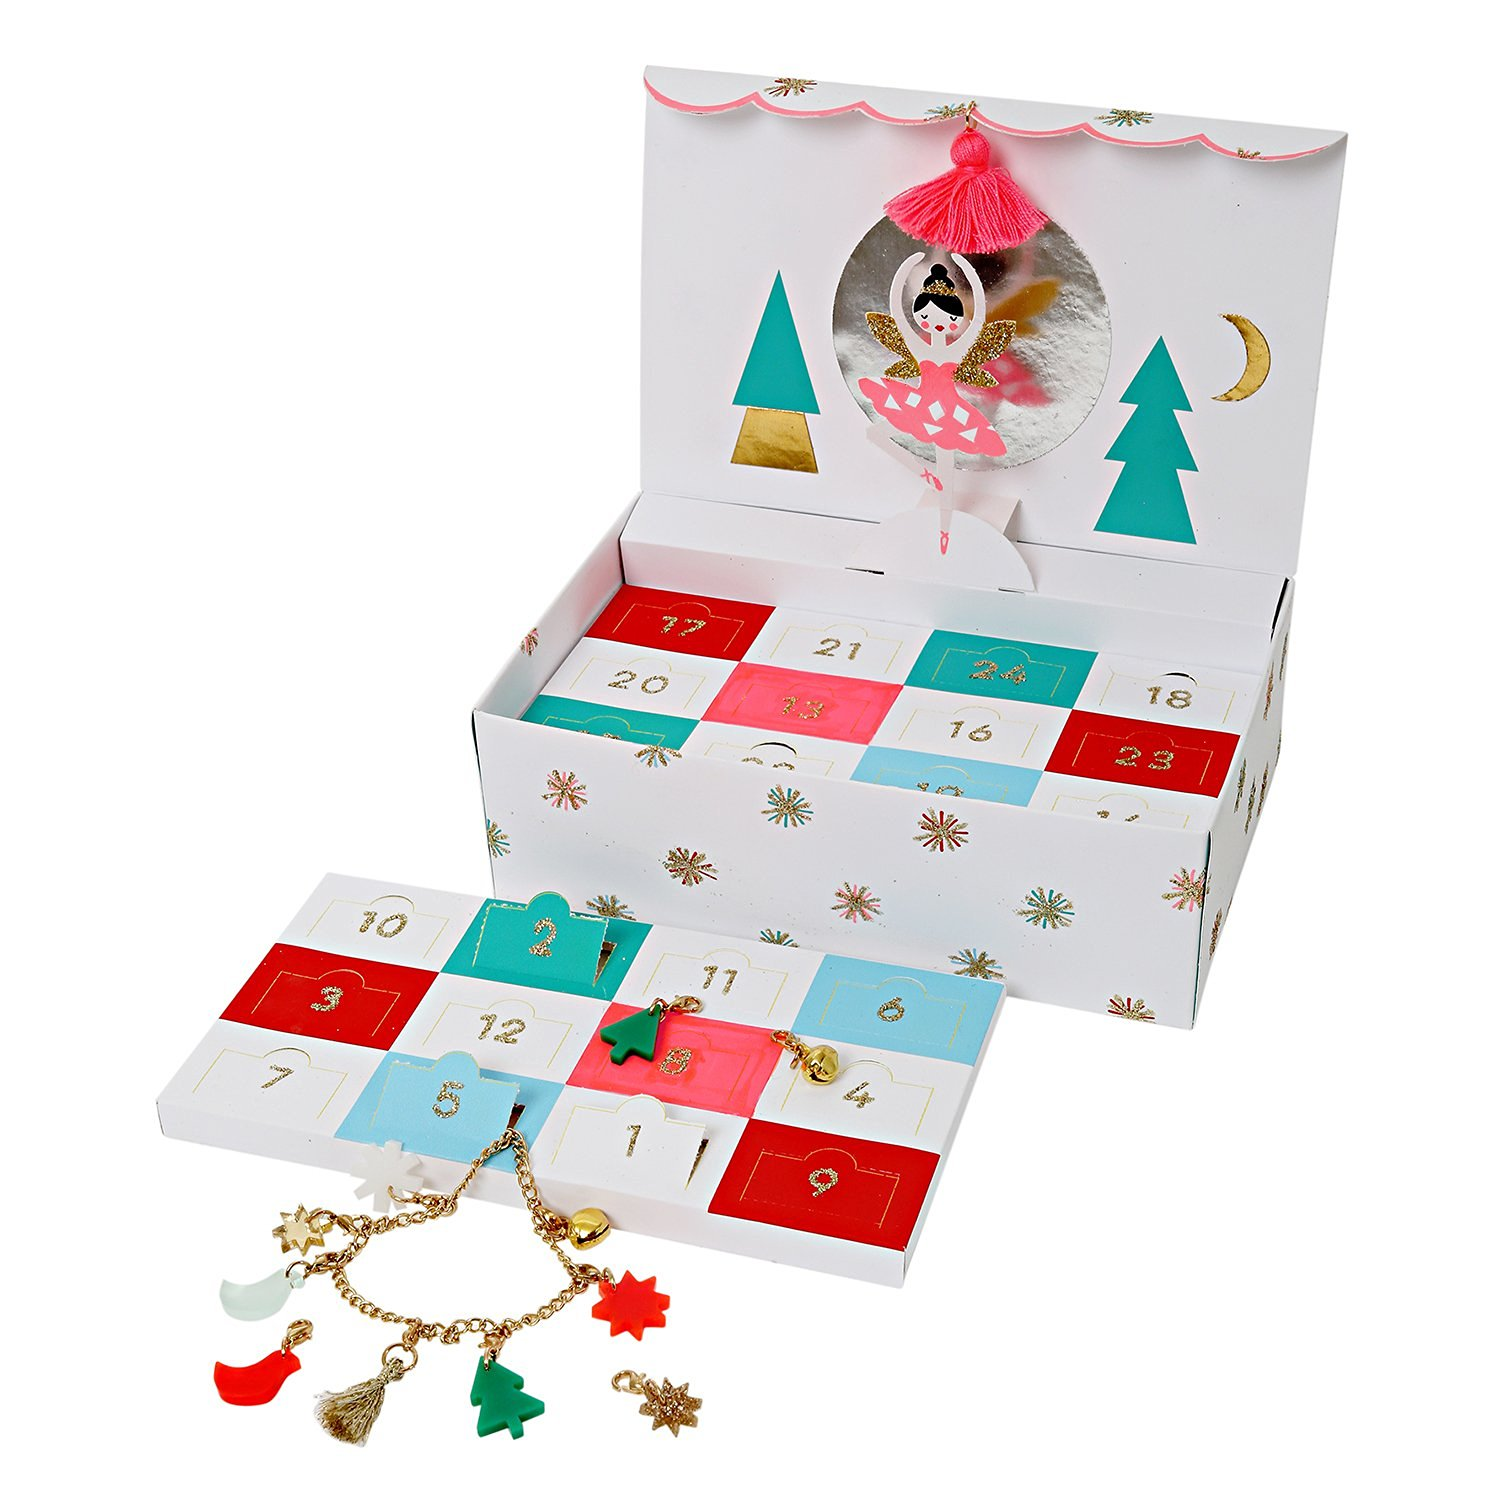 nutcracker-charm-bracelet-advent-calendar